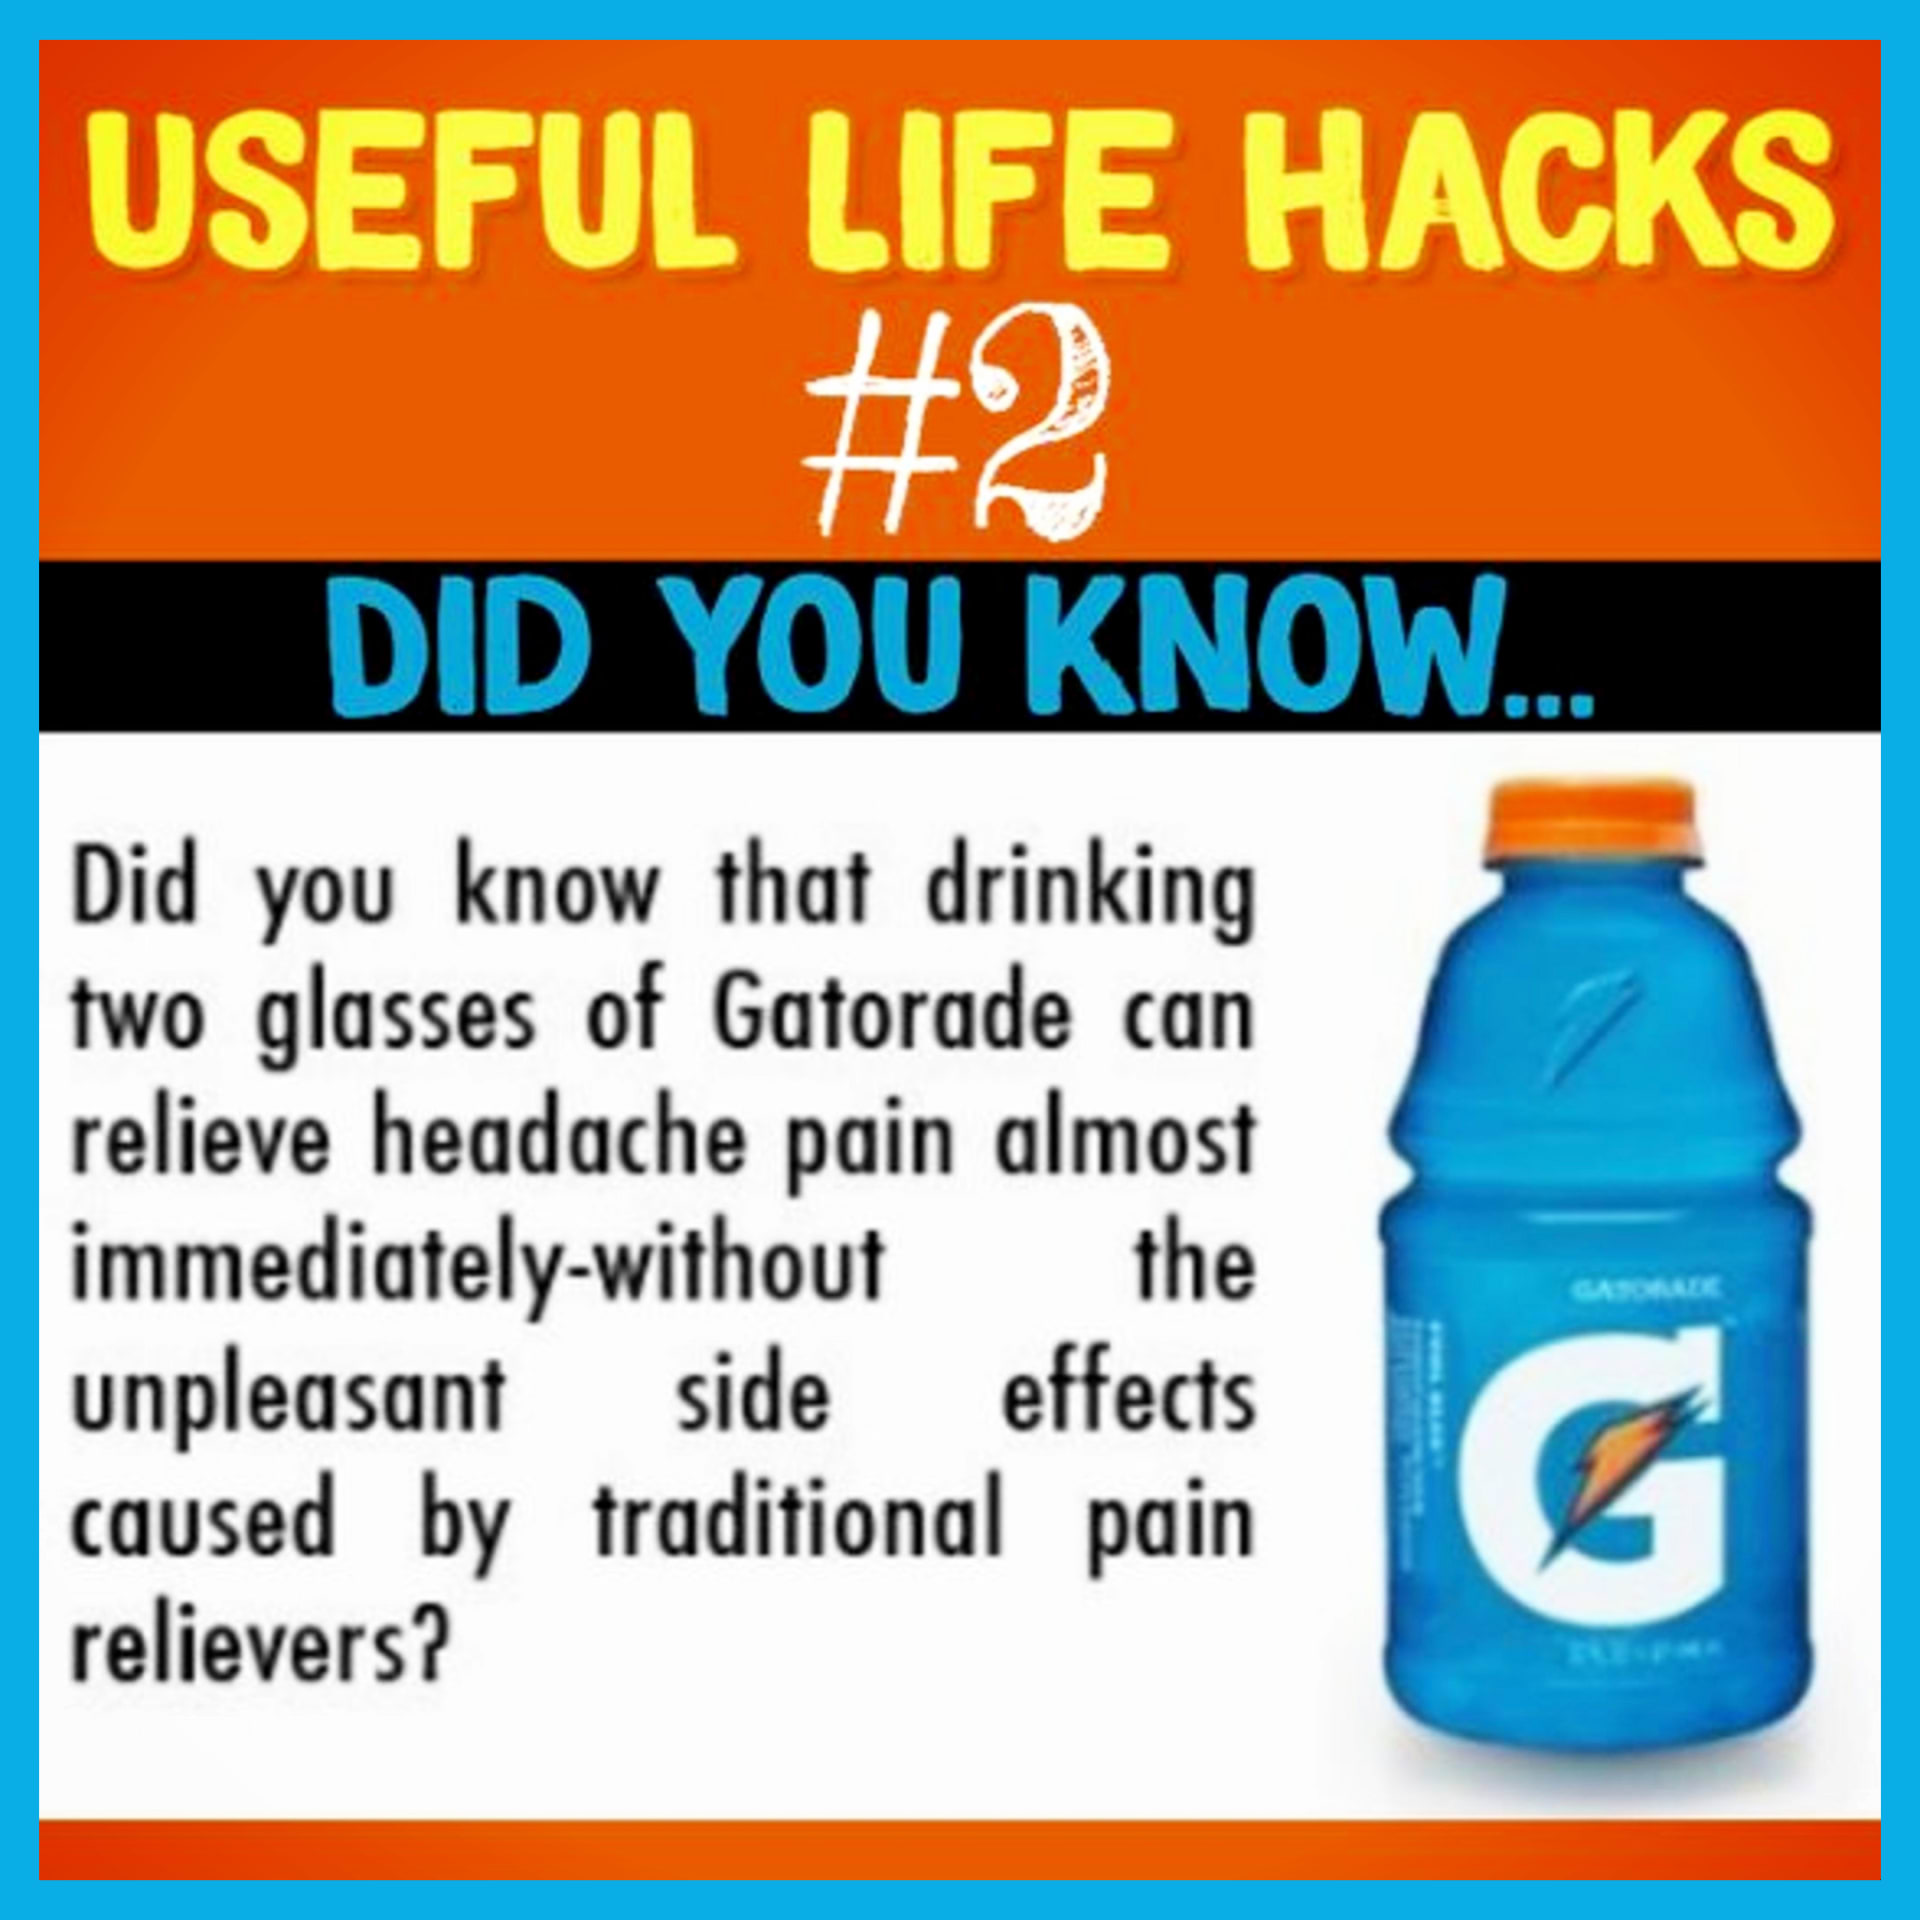 Headache relief - instant relief from many tension, sinus, hangover and migraine headaches and more Useful Life Hacks - MIND BLOWN!  Households life hacks and good to know hacks tips and lifehacks - these household hacks, cleaning tips & tricks are such helpful hints and life changing lifehacks